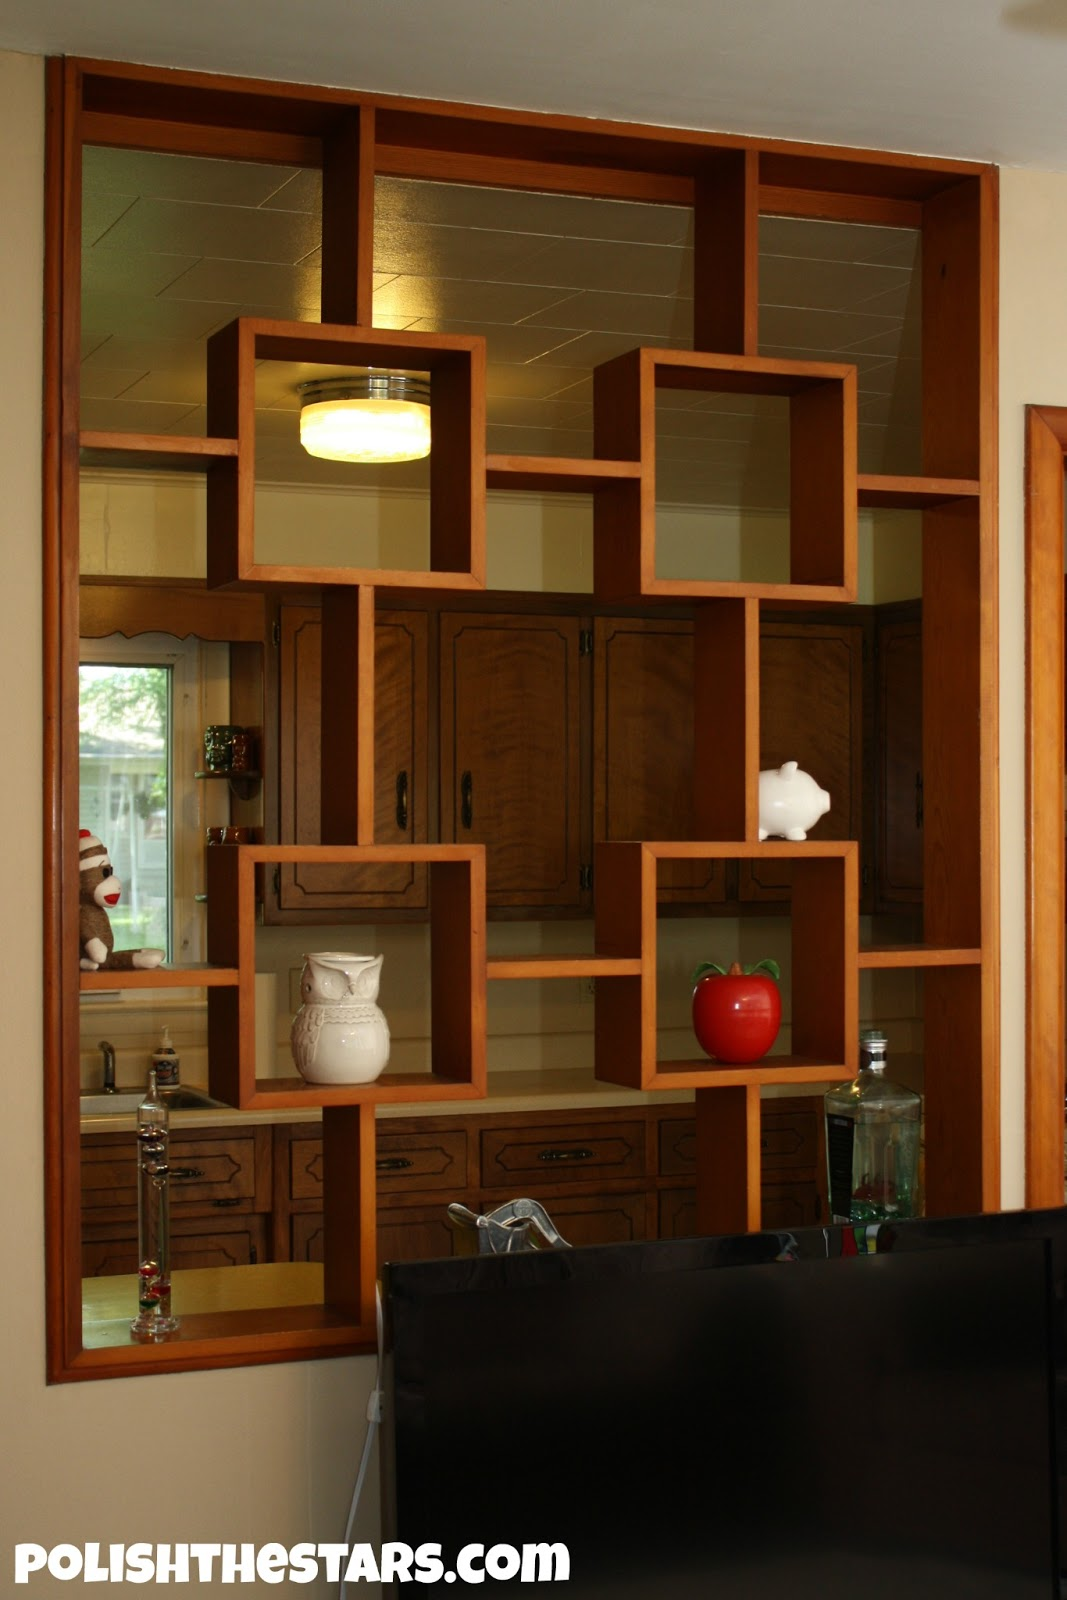 wall dividers design photo - 1